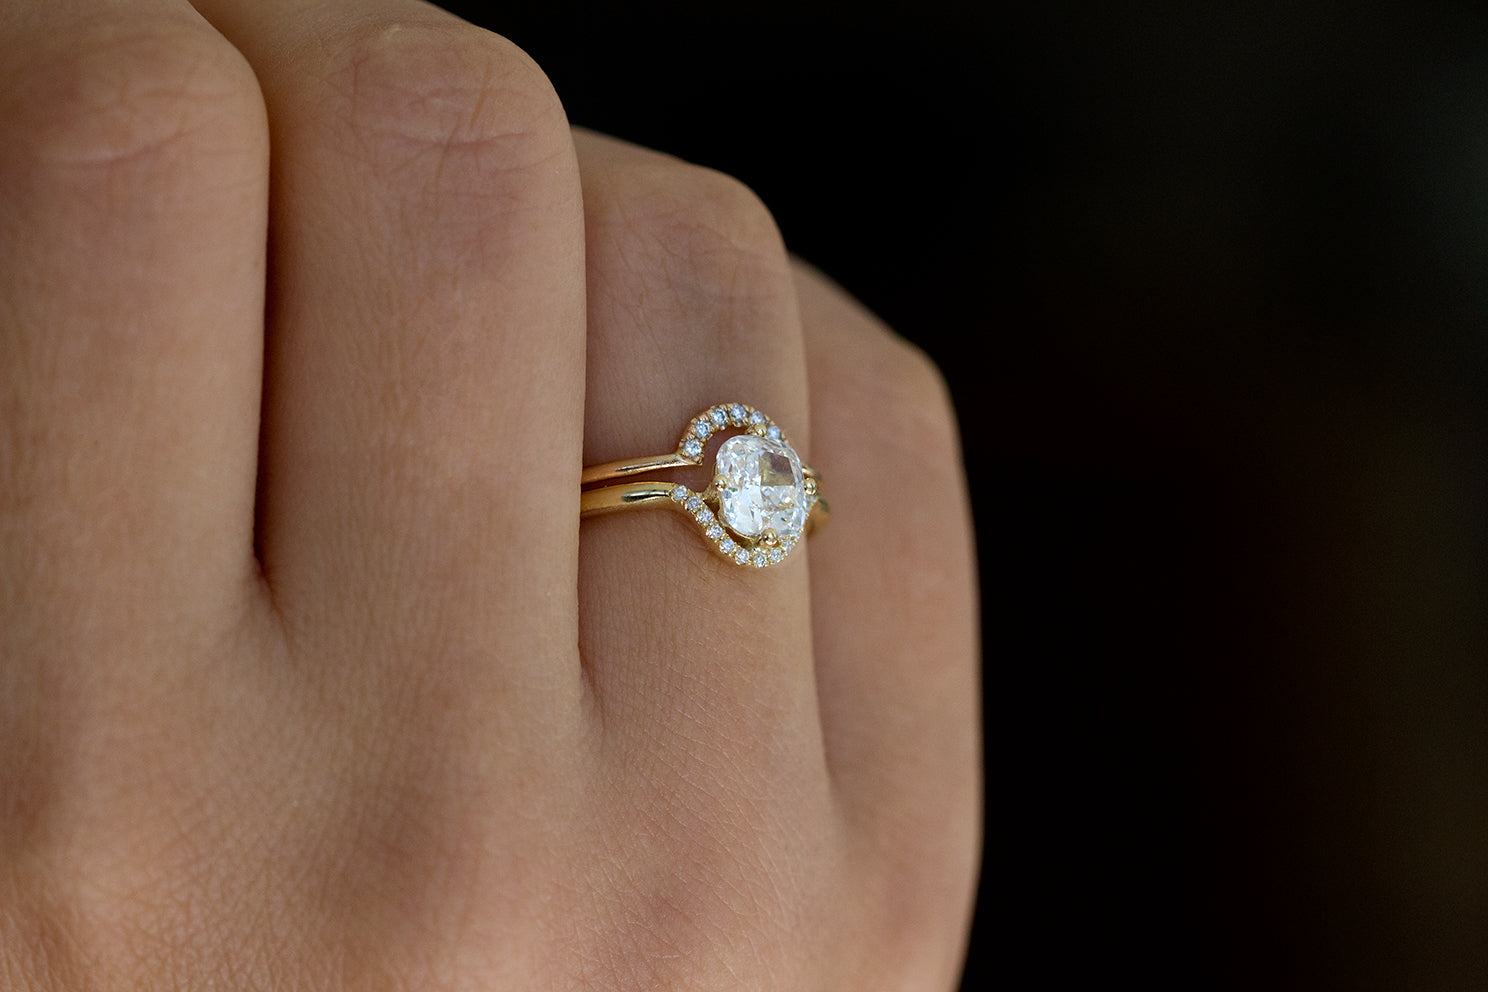 Cushion Cut Engagement Ring with Diamond Crown in Set